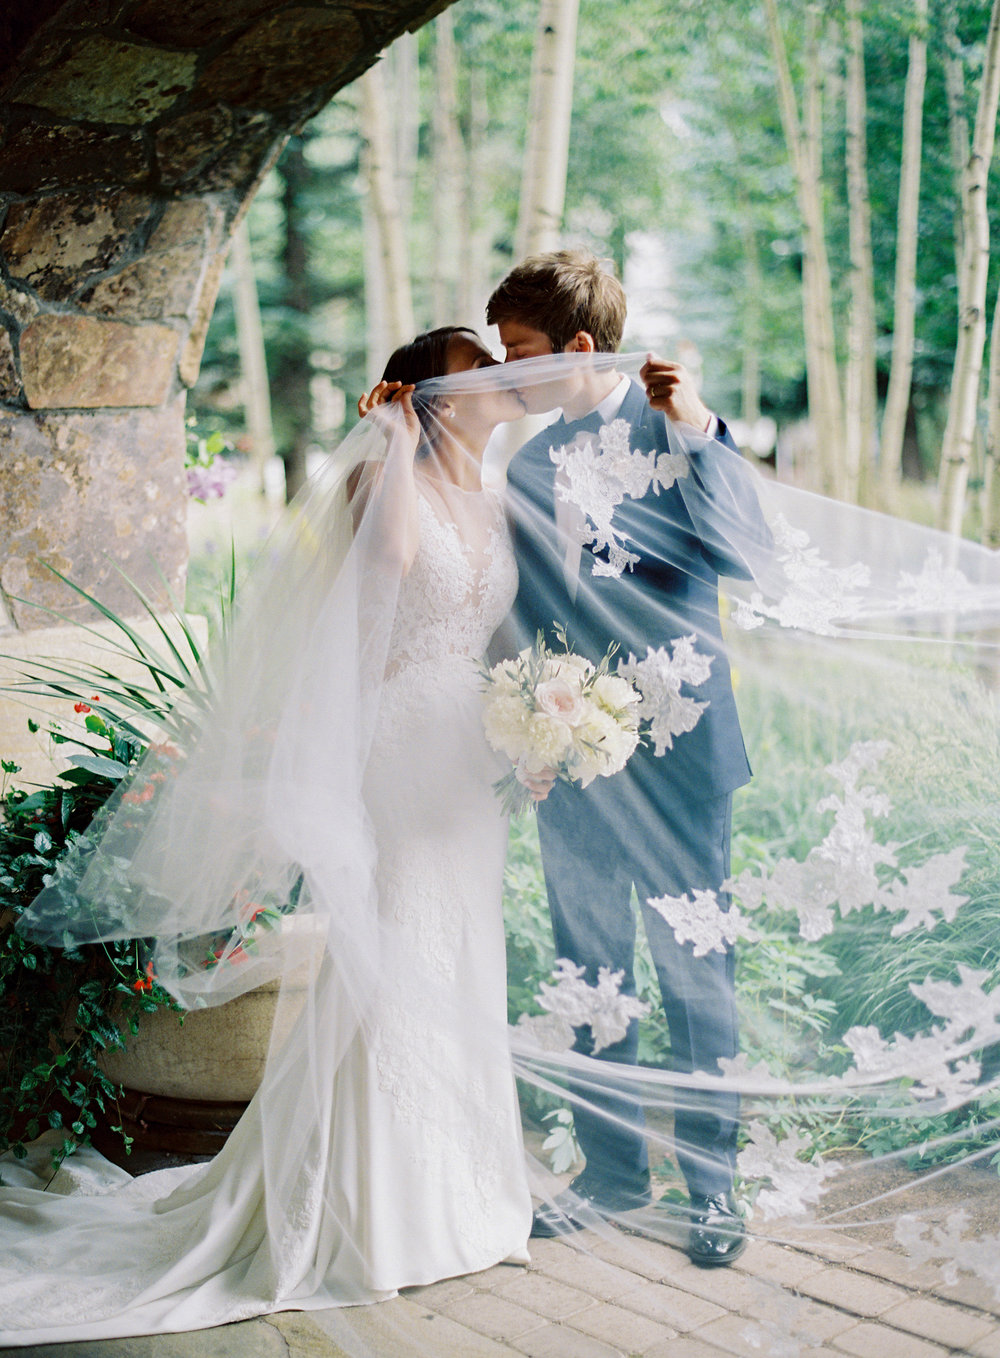 Morgan + Pierre - Vail, Colorado